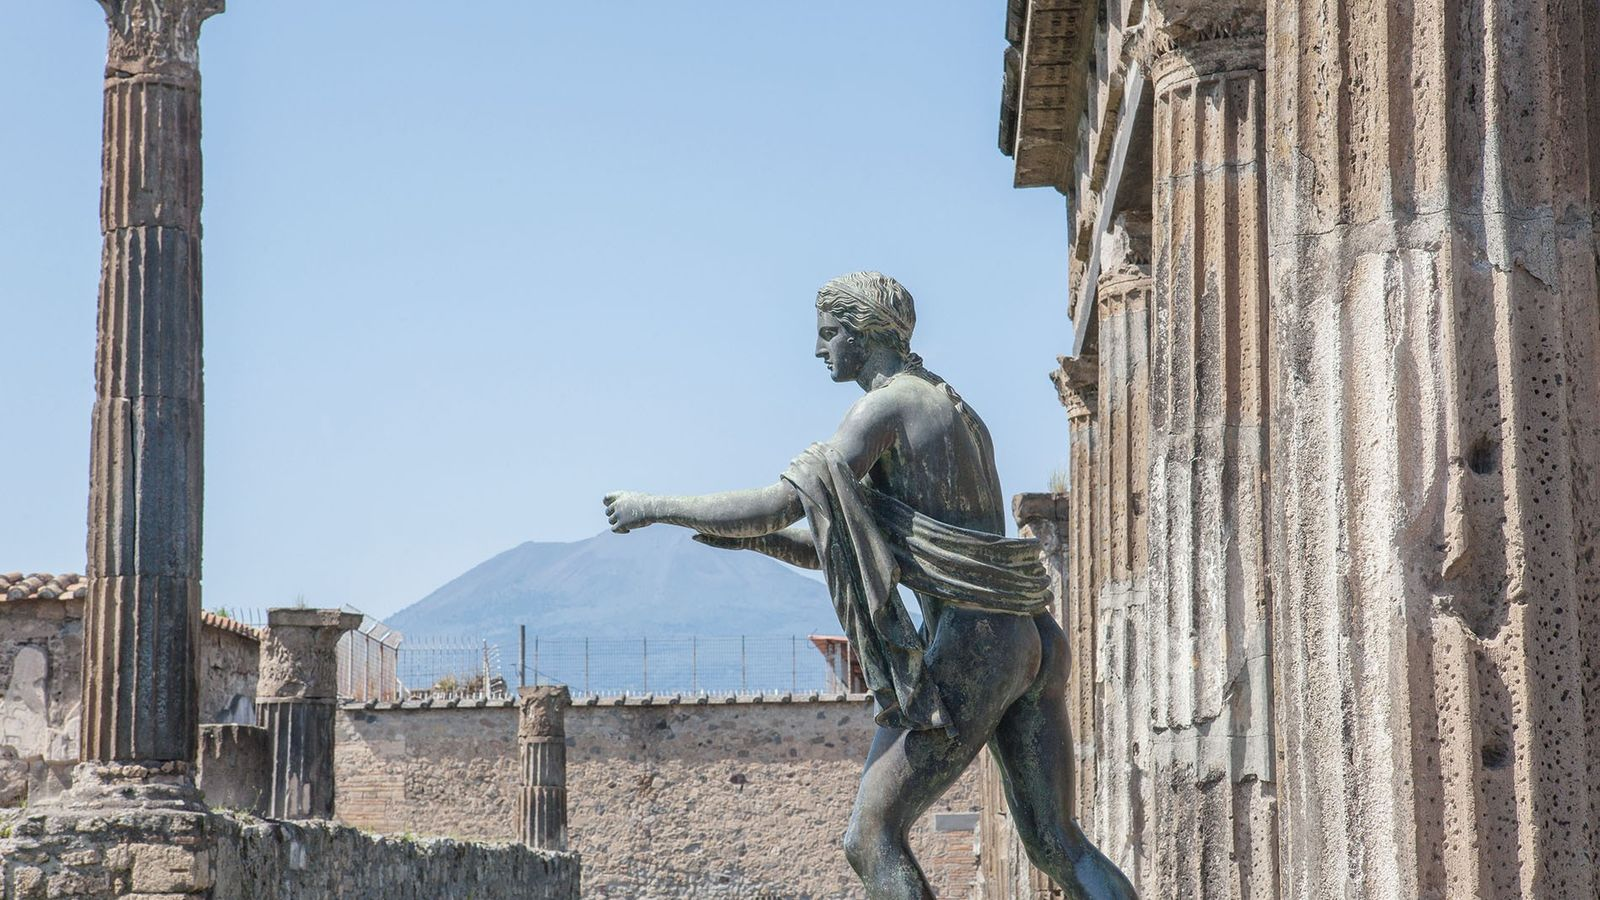 Vesuvius watches over the ruins of Pompeii – the city it destroyed nearly 2,000 years ago. ...